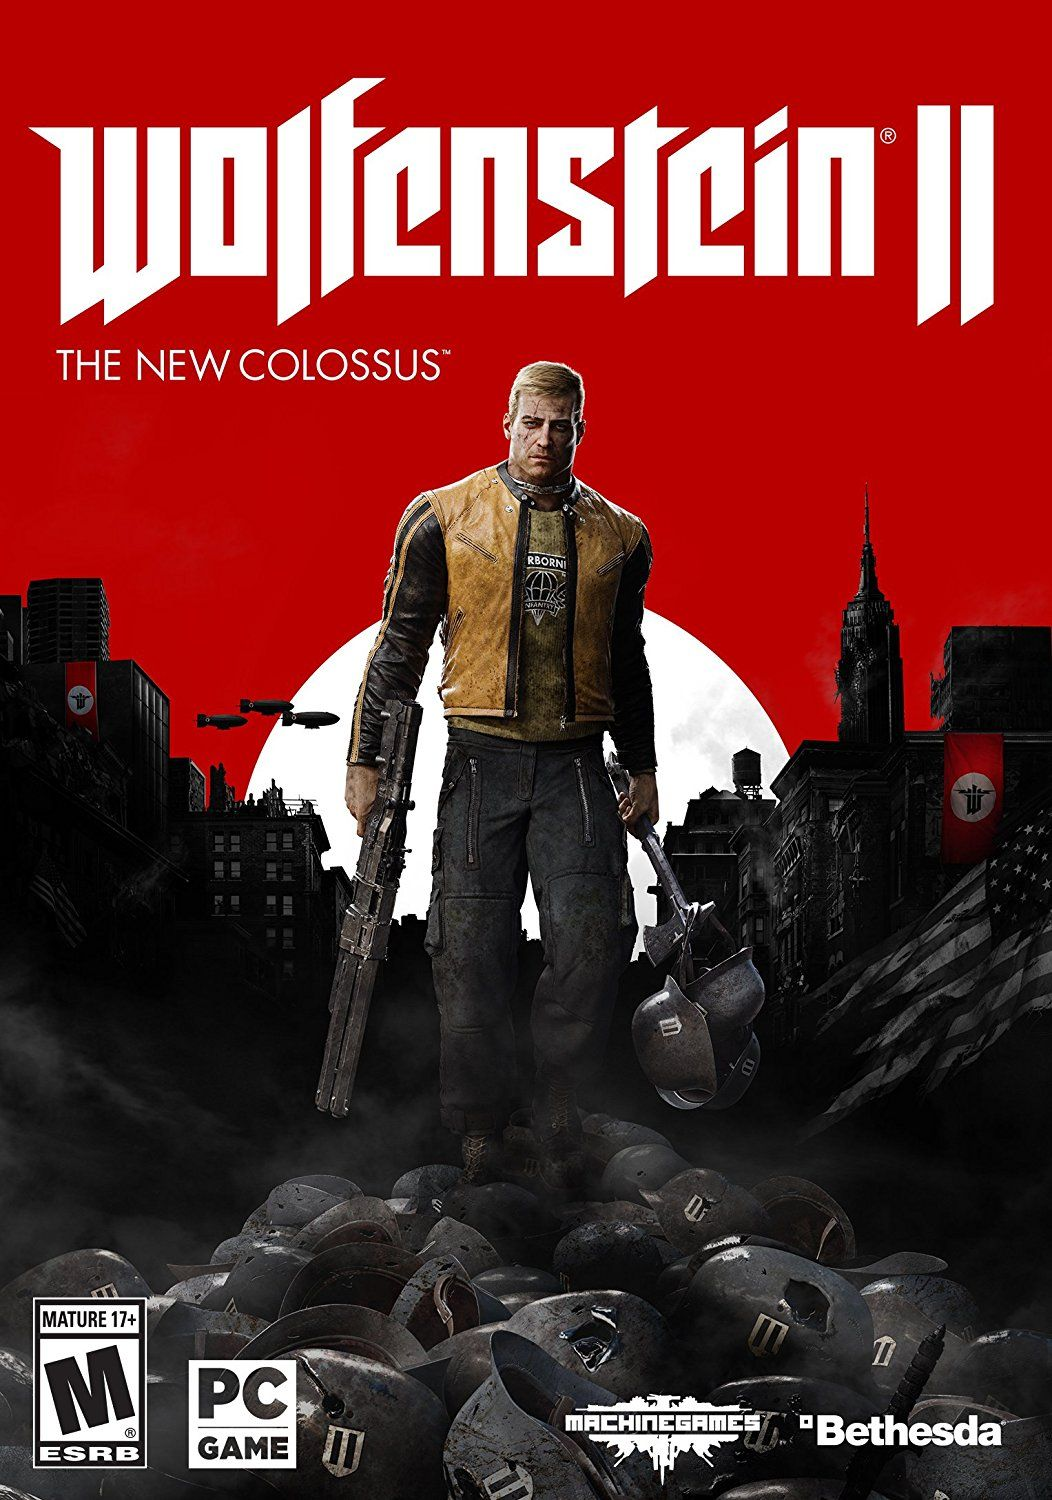 Image result for Wolfenstein II The New Colossus cover pc